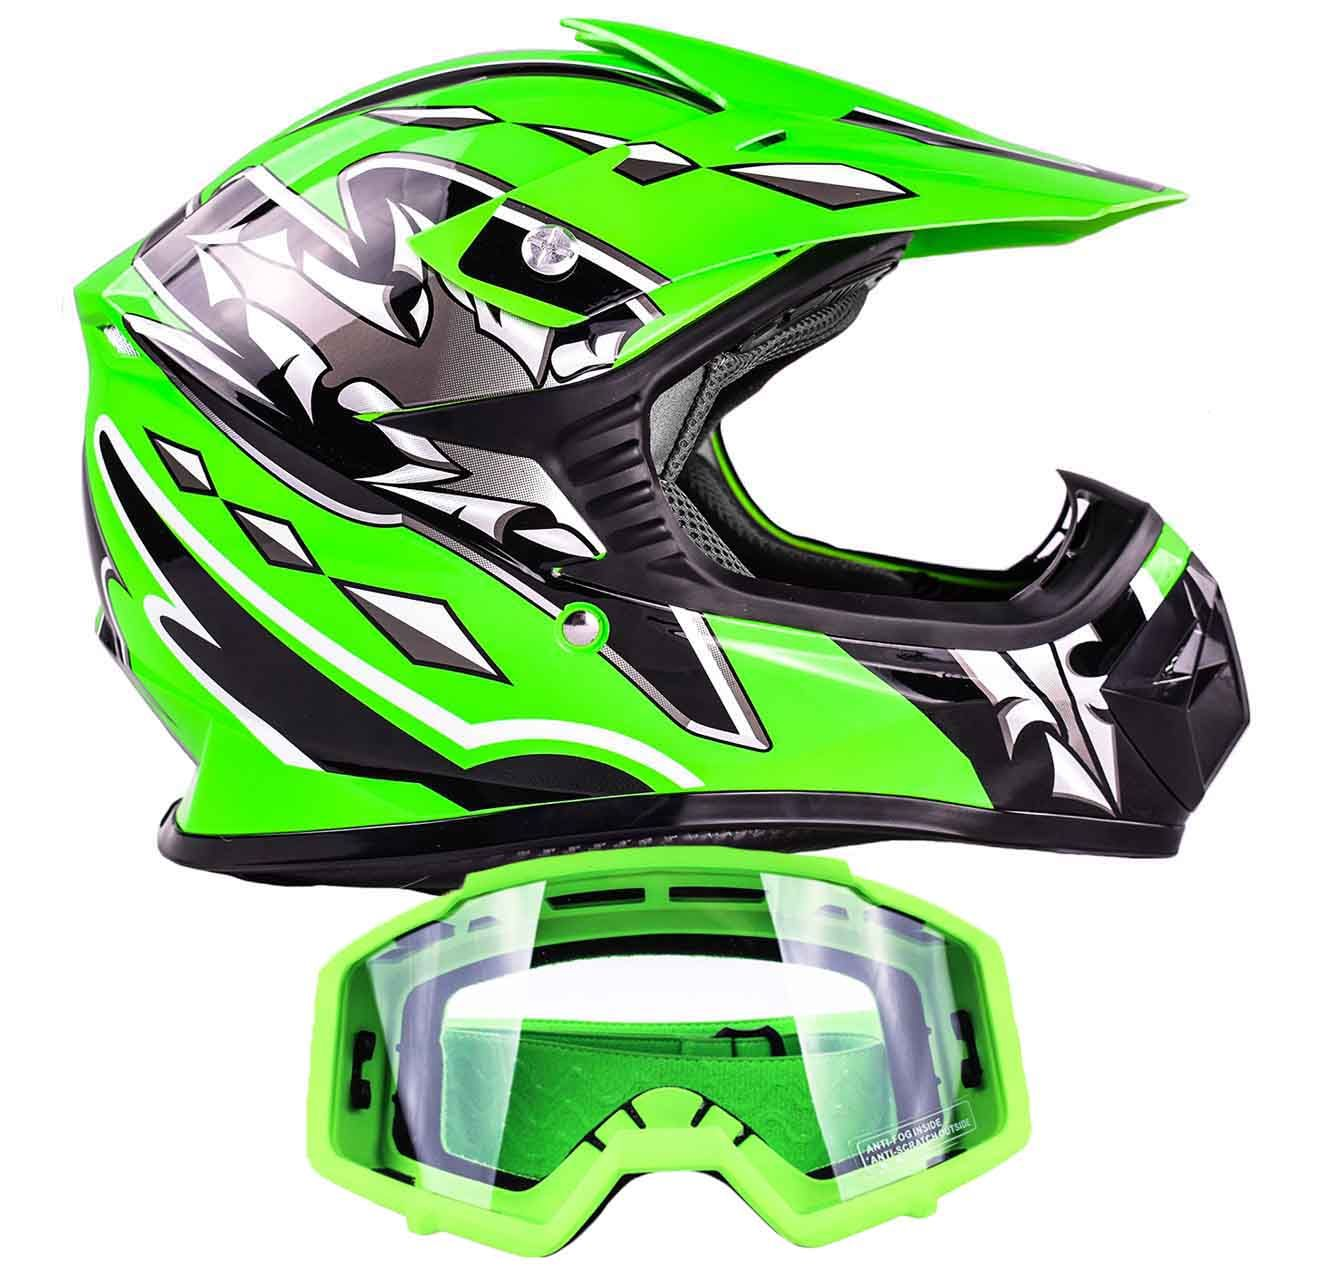 Youth Dirt Bike Helmets Folding Mountain Bike Dirt Bike Helmets Helmet